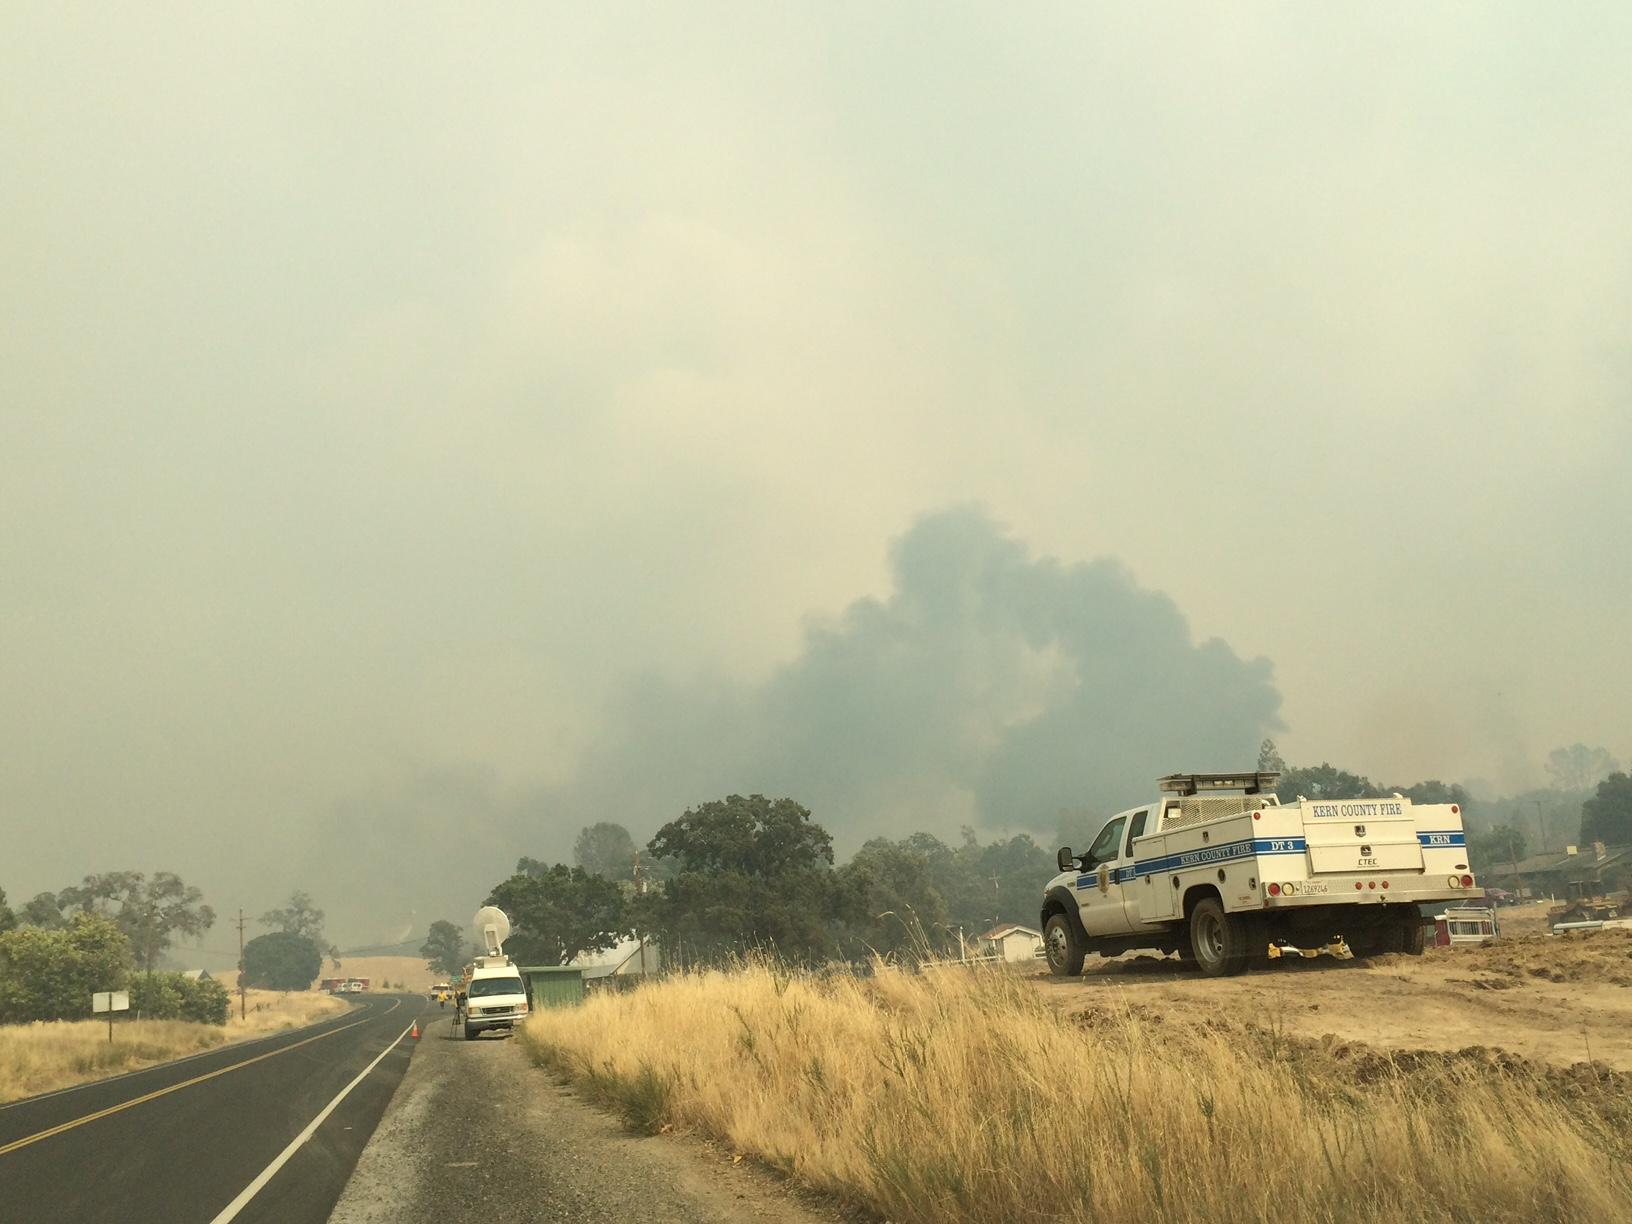 Evacuation order lifted for town threatened by fire